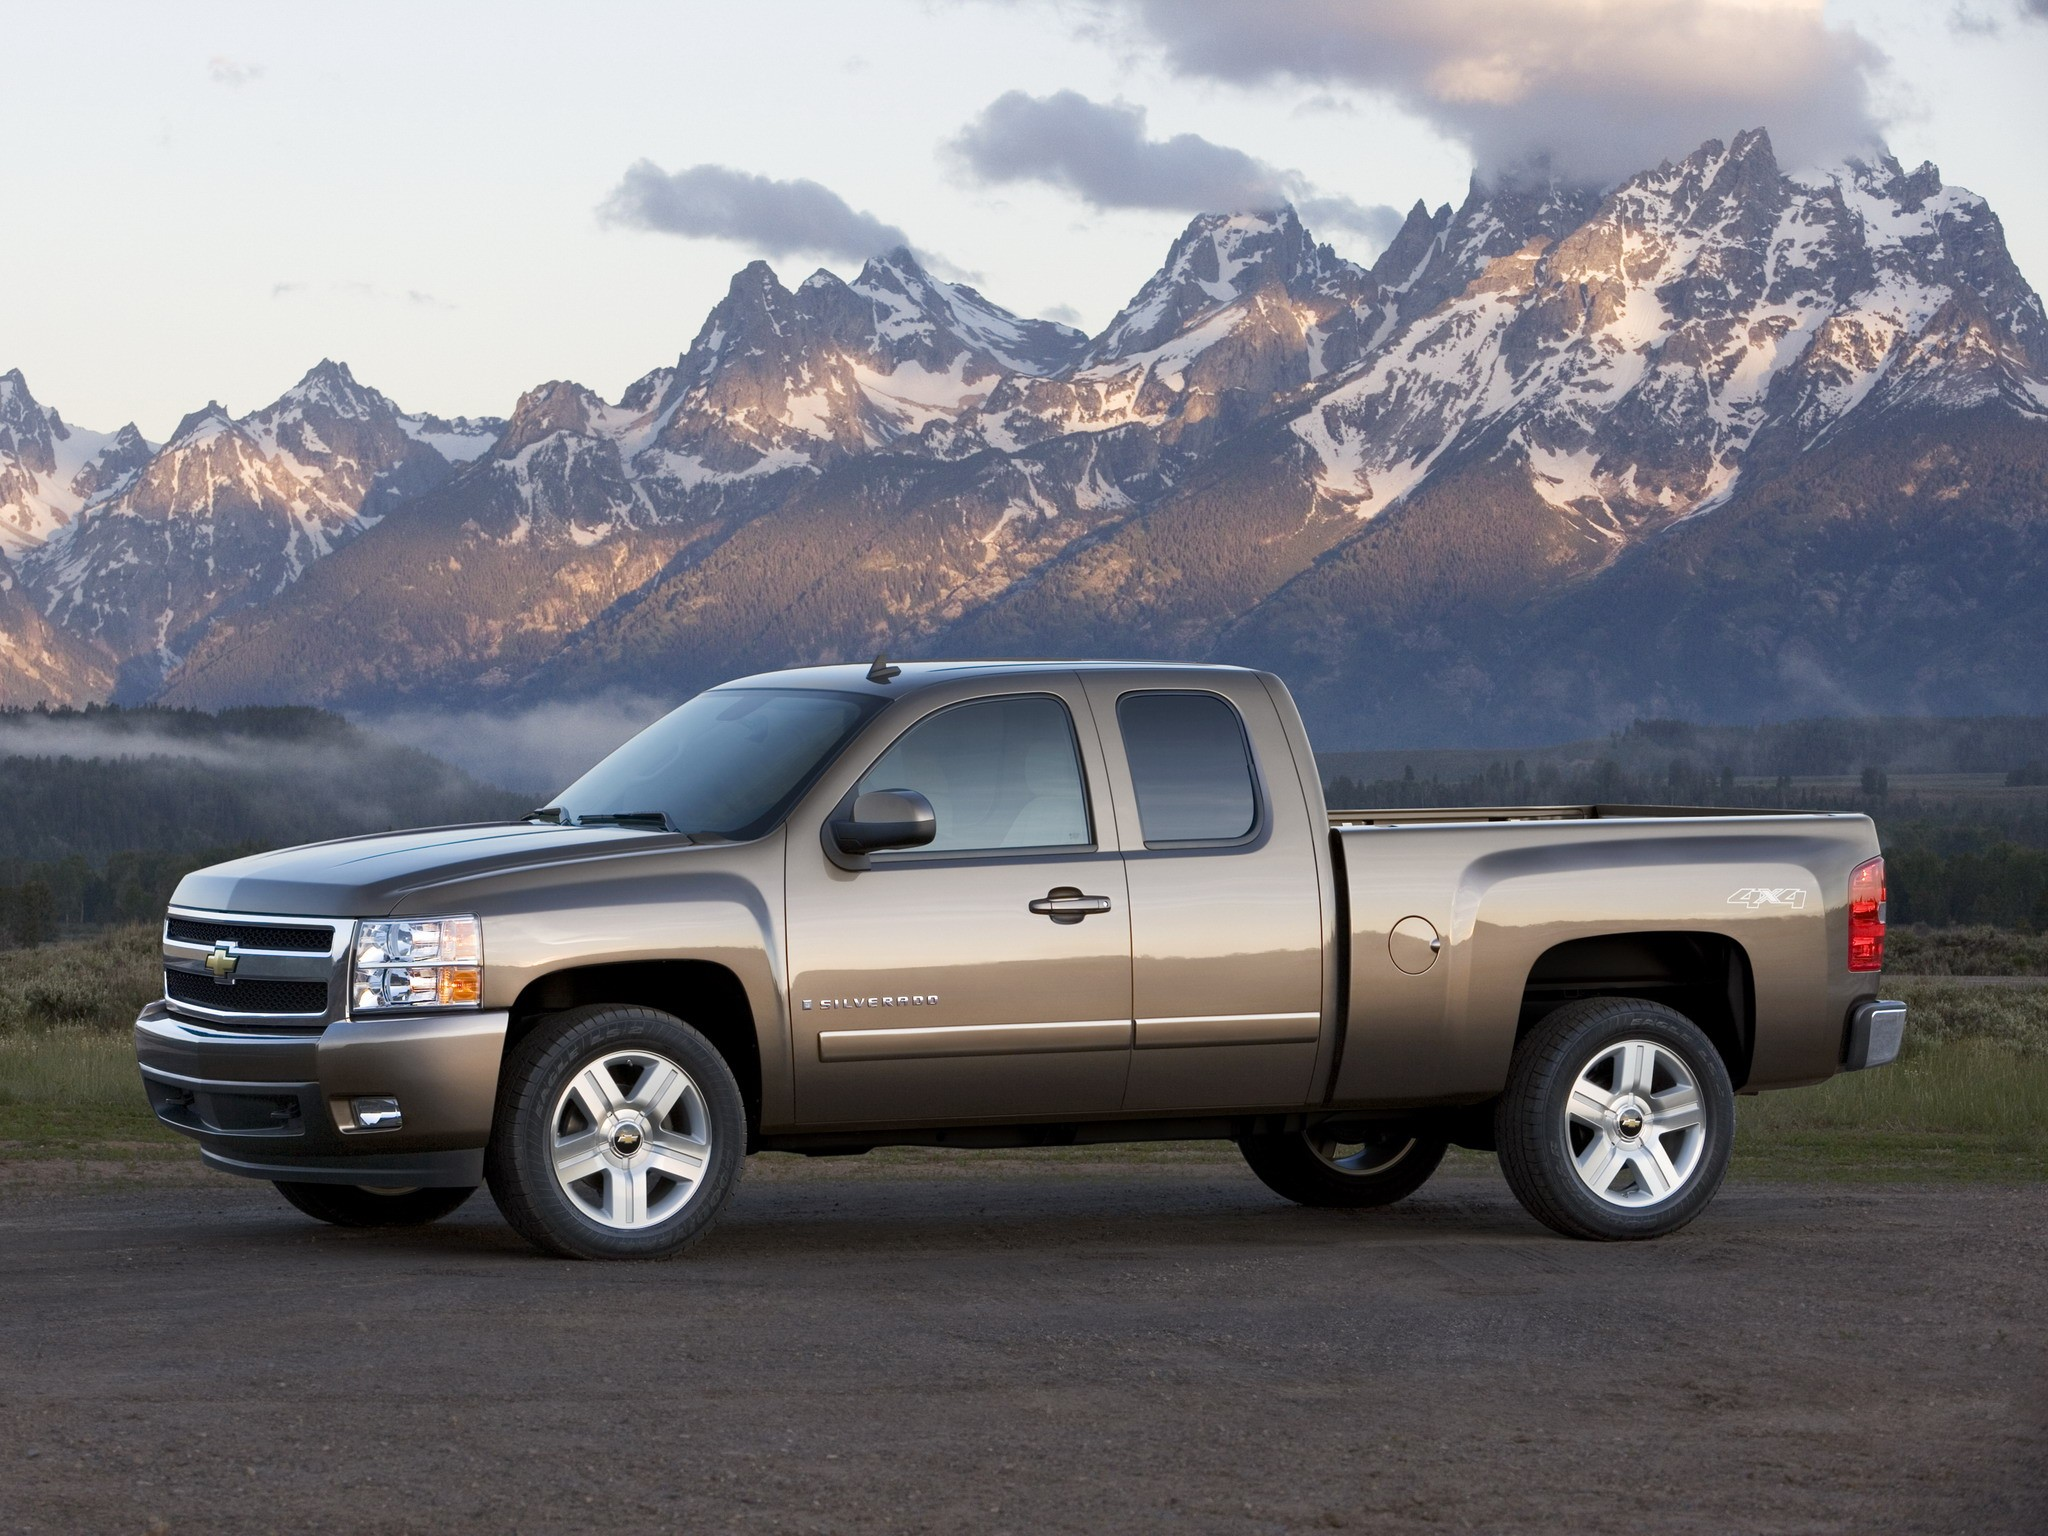 Chevrolet Silverado Extended Cab on Chevy Extended Cab